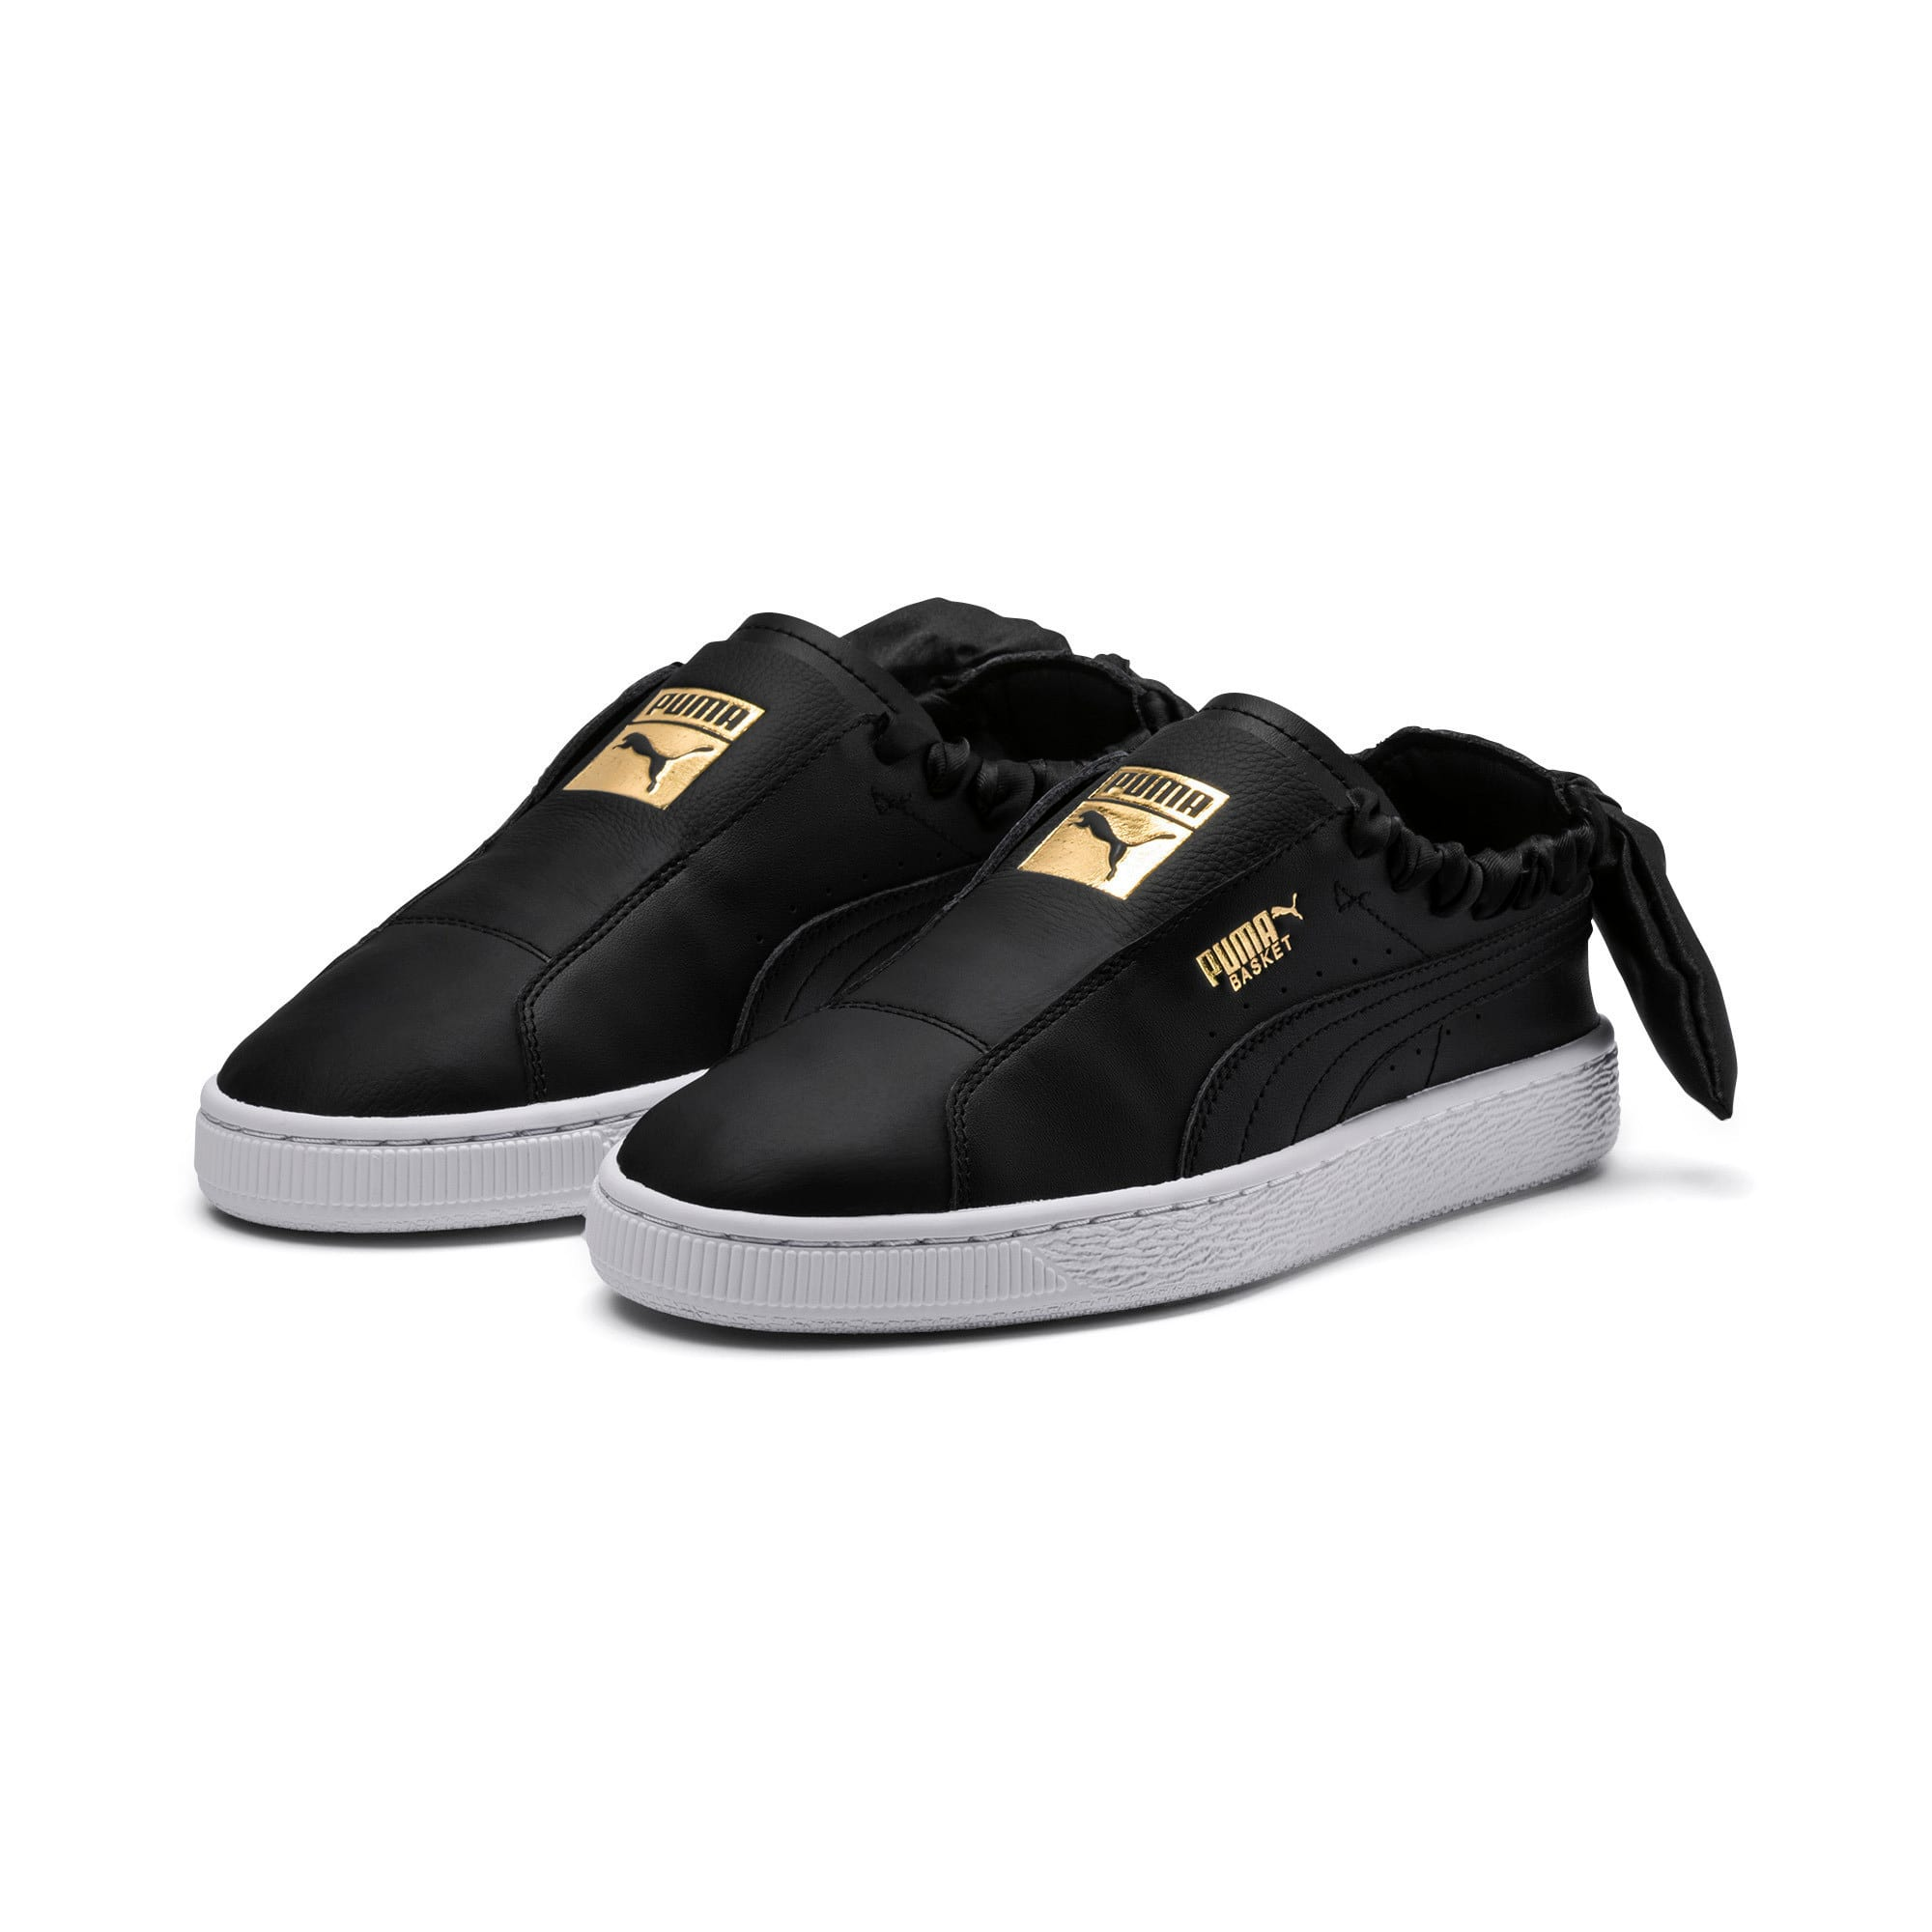 Thumbnail 3 of PUMA Basket Twist Women's Trainers, Puma Black-Puma Team Gold, medium-IND